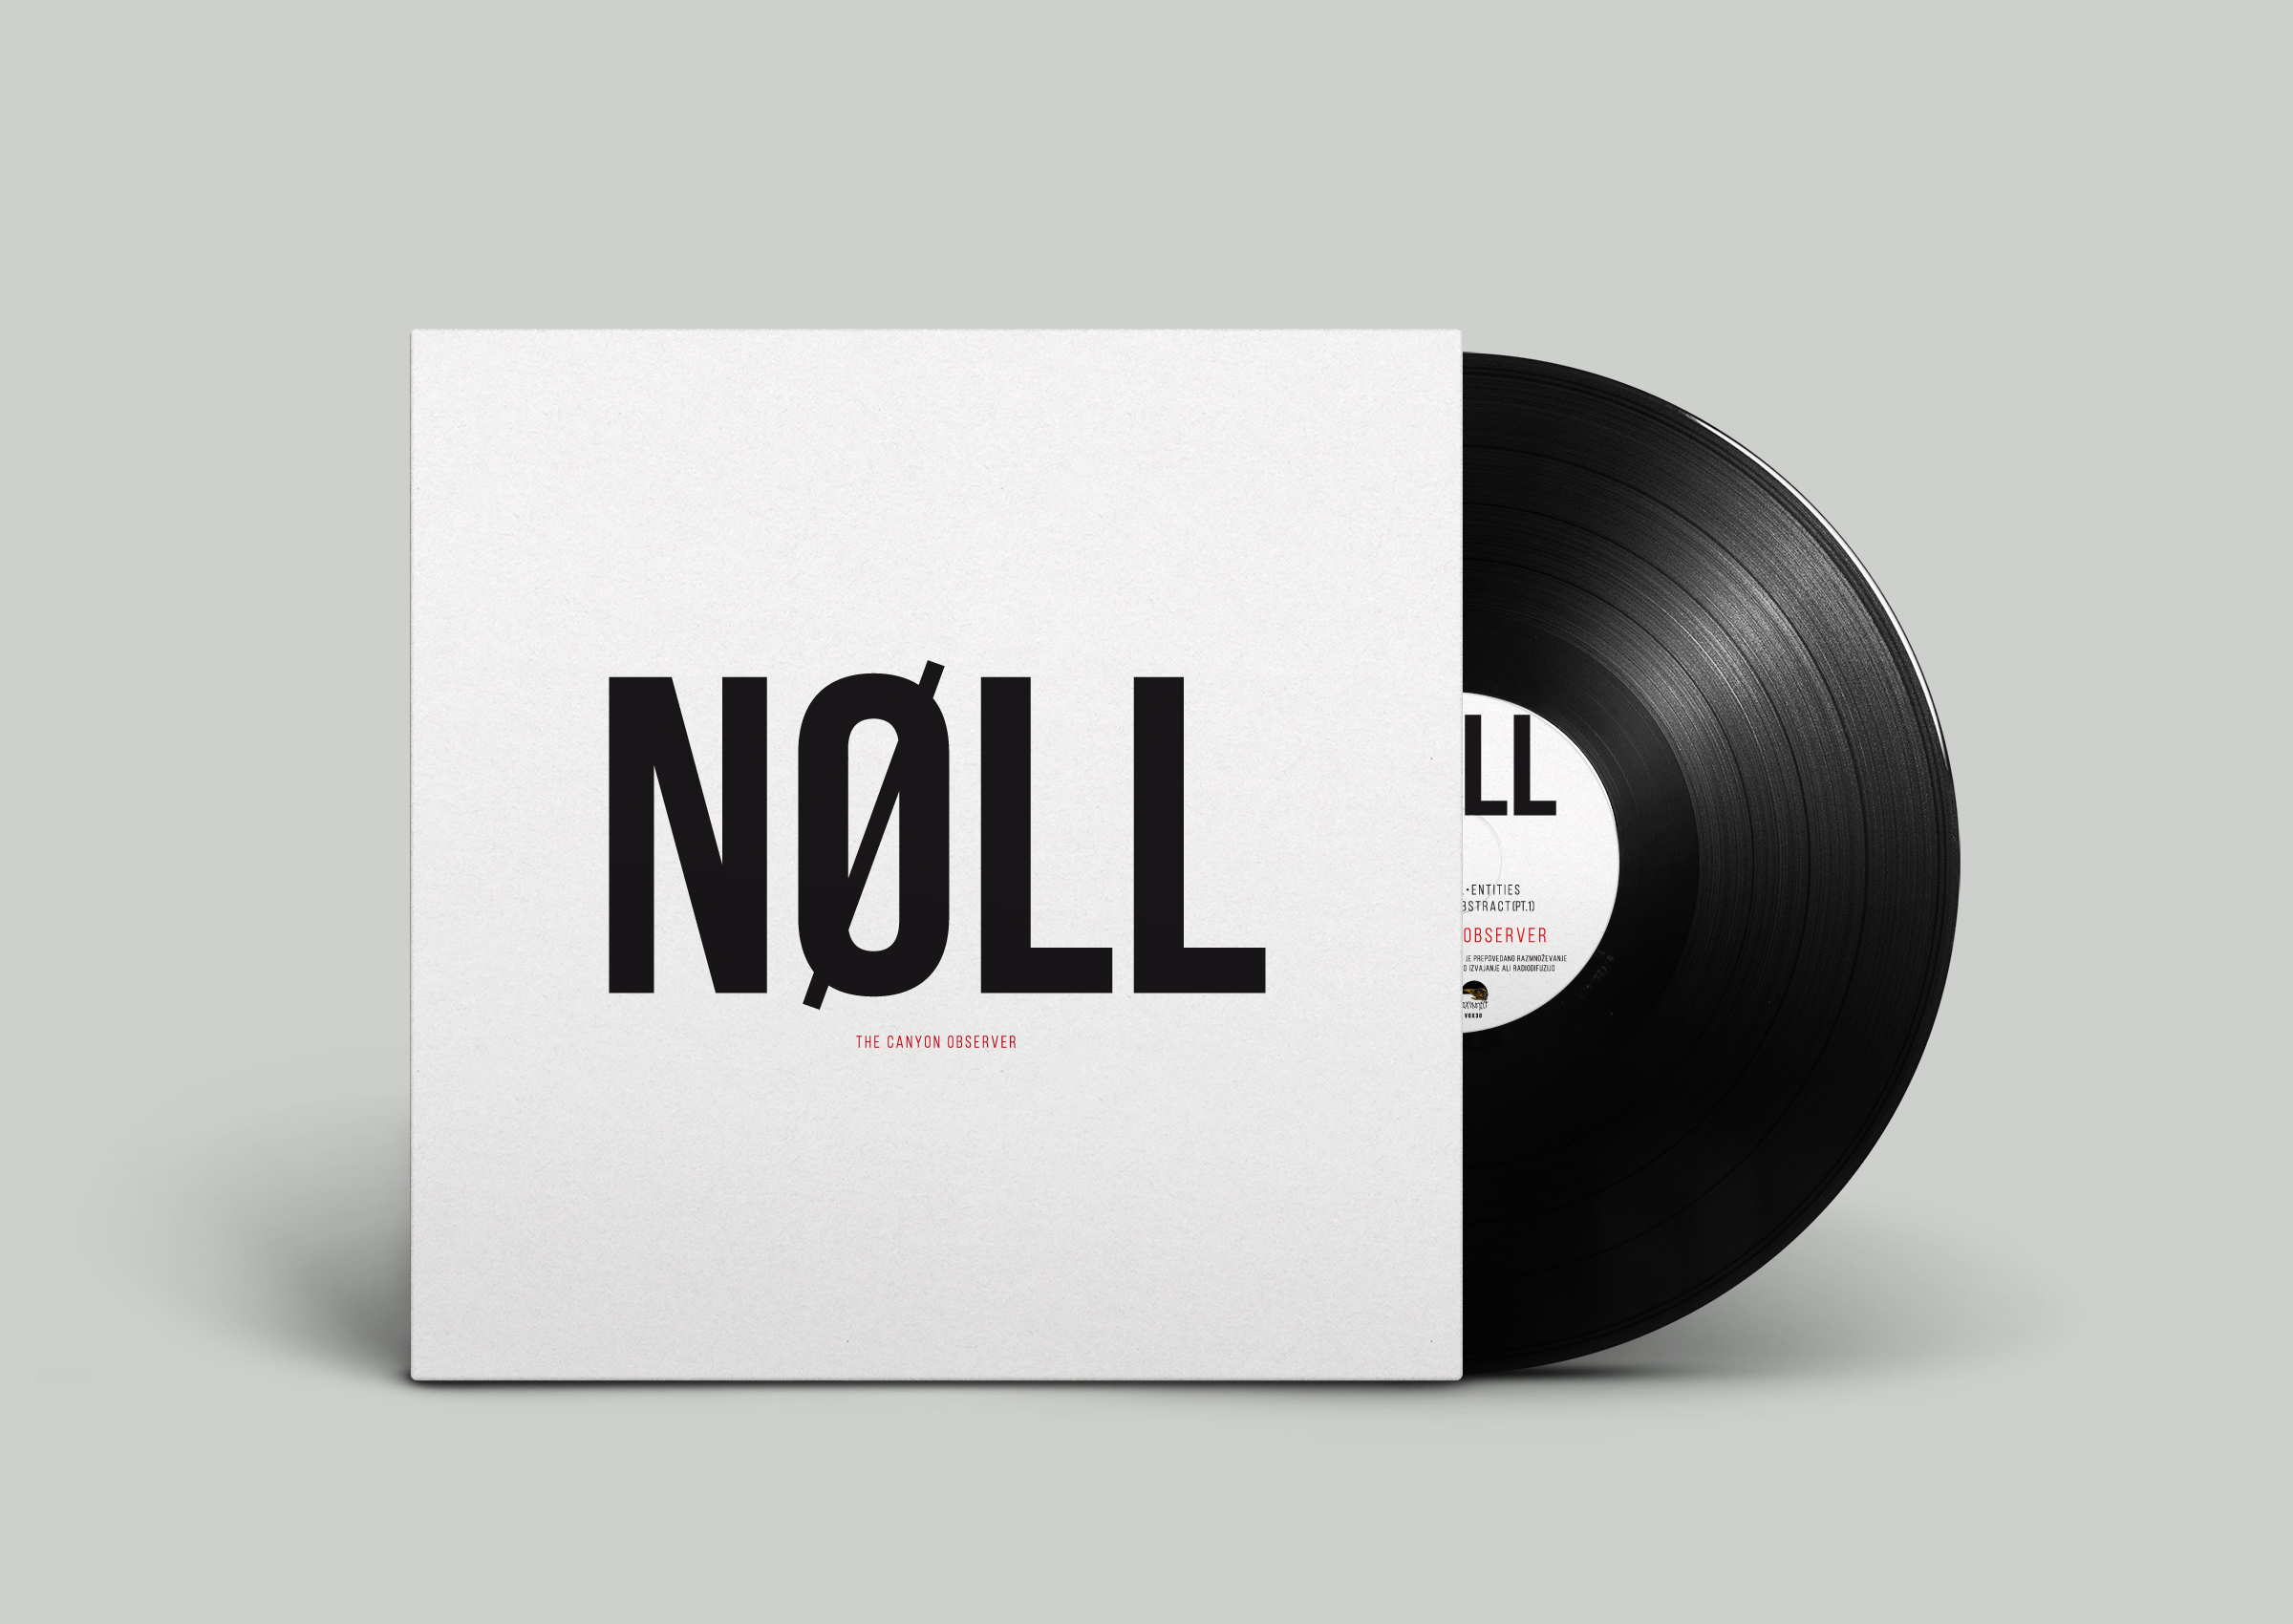 [VOX30] THE CANYON OBSERVER - NØLL